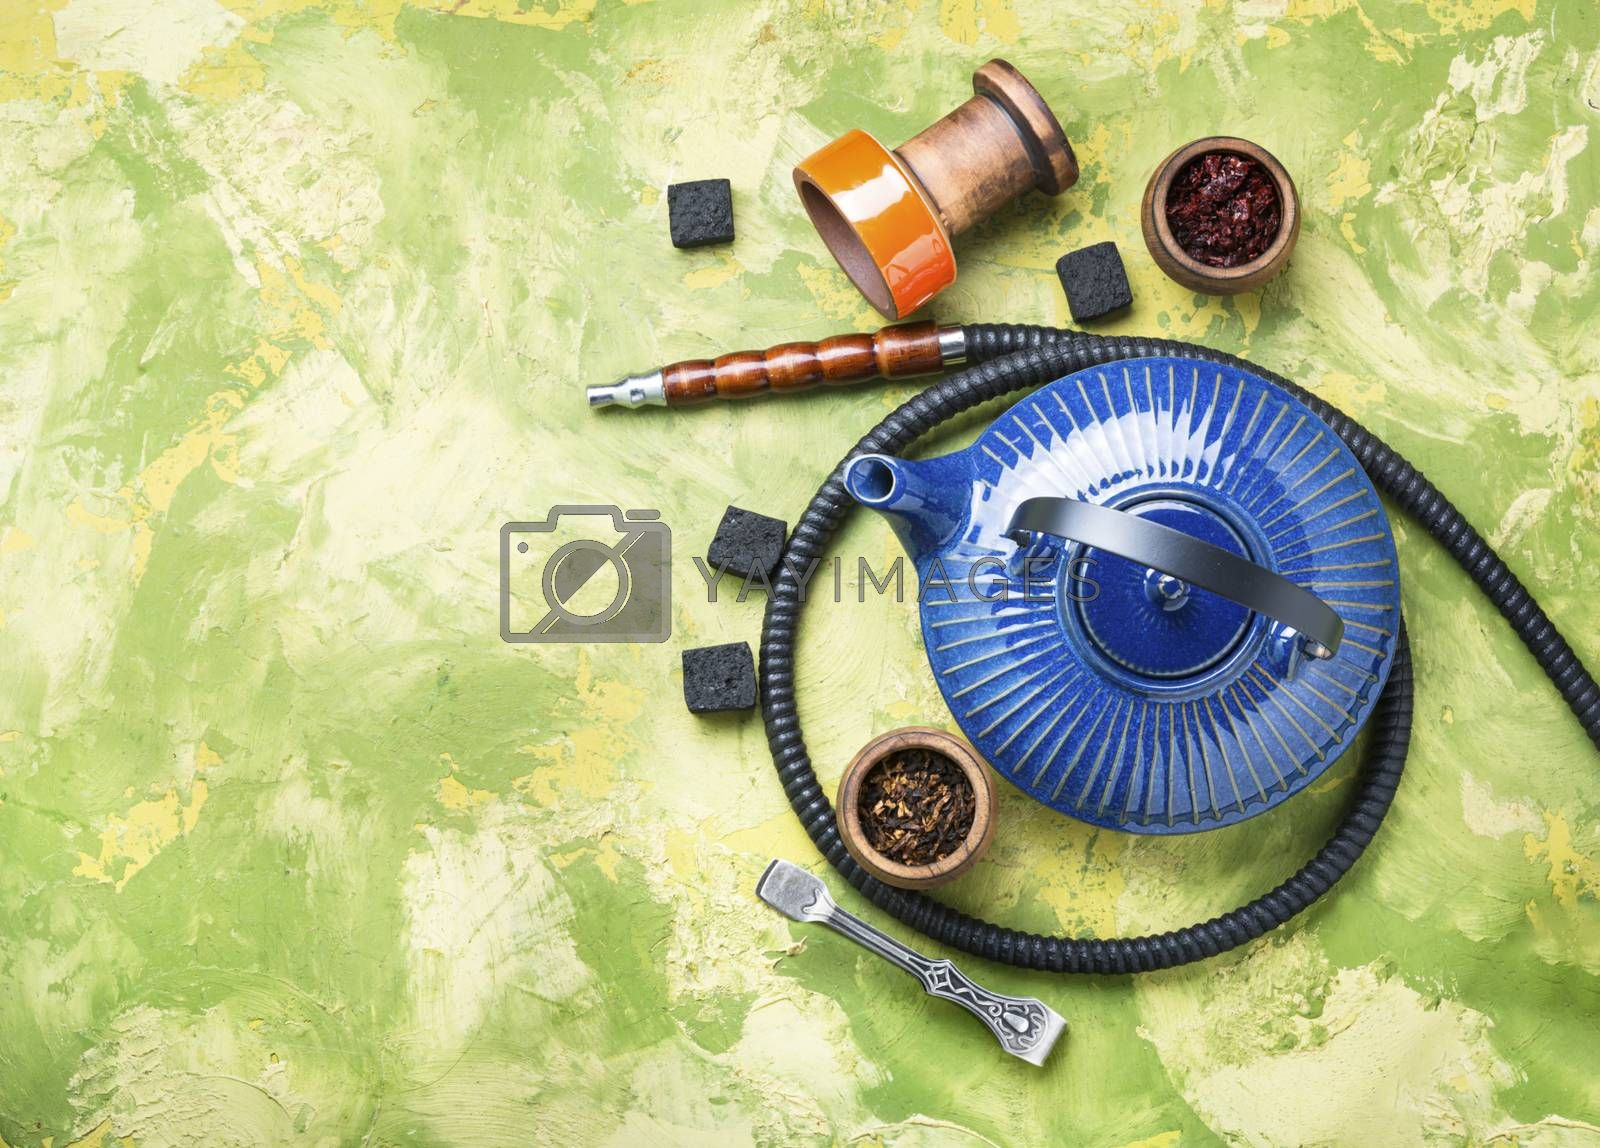 Details of tobacco hookah and teapot with tea.Eastern smoking shisha.Space for text